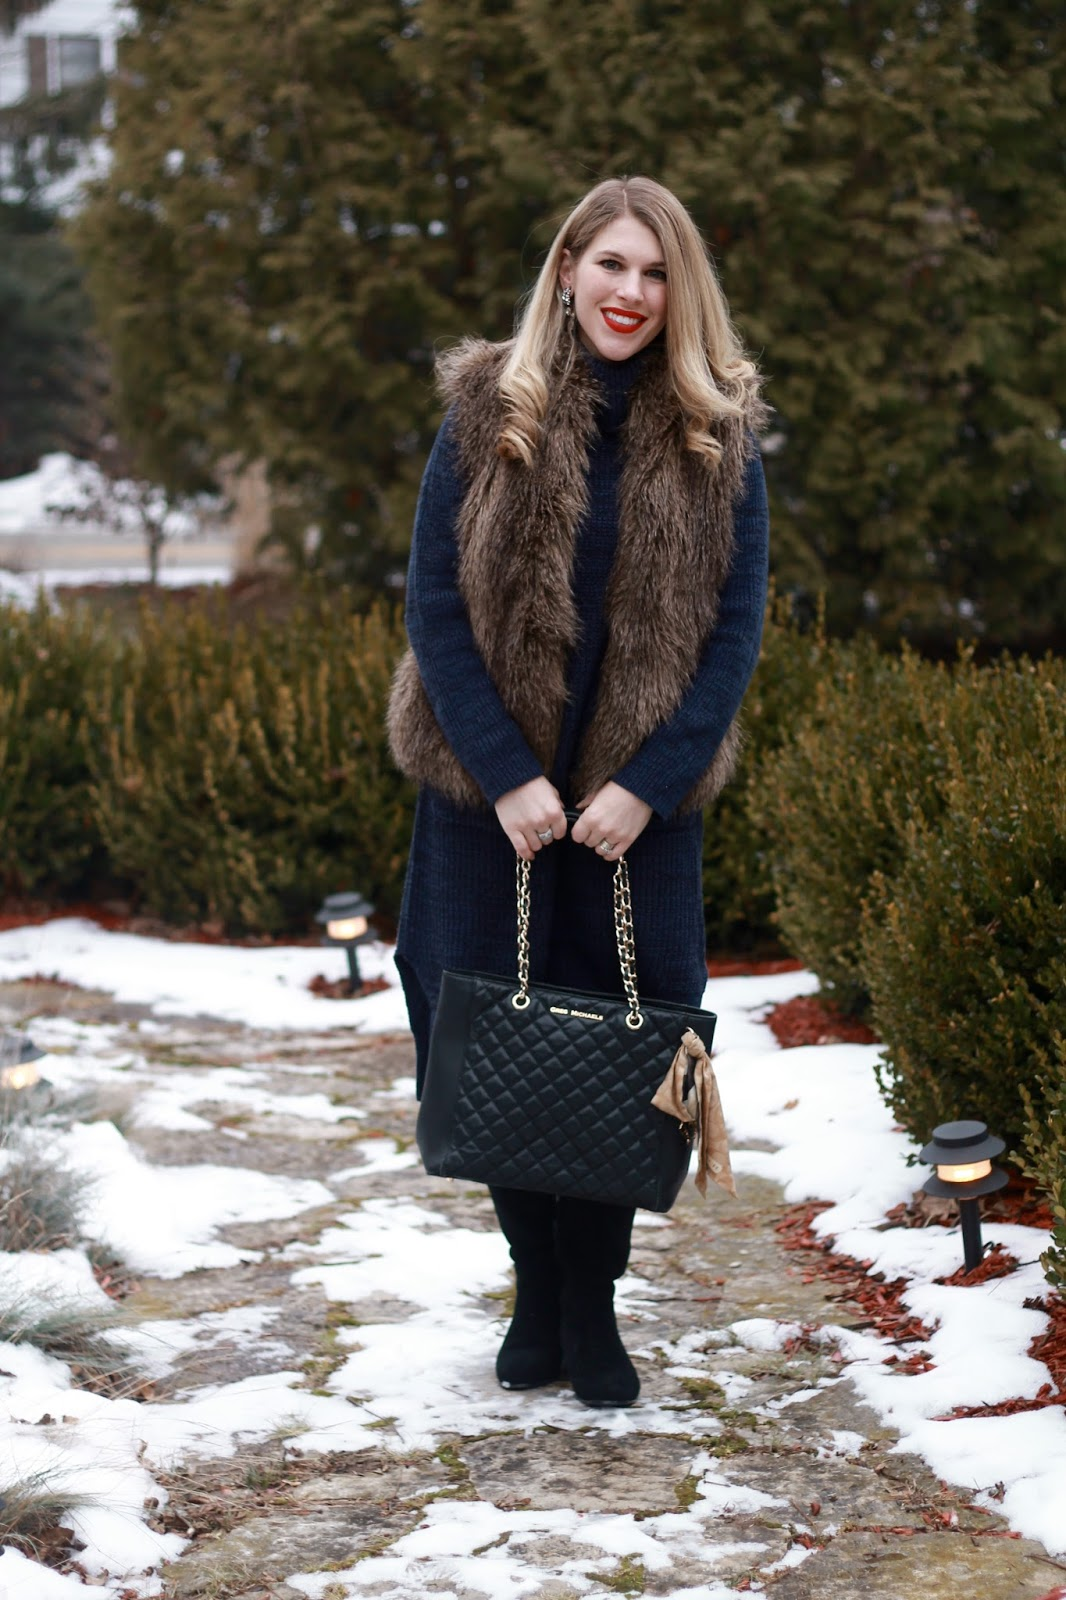 sweater dress, Romwe Navy Sweater Dress, fur vest, black OTK boots, black quilted tote